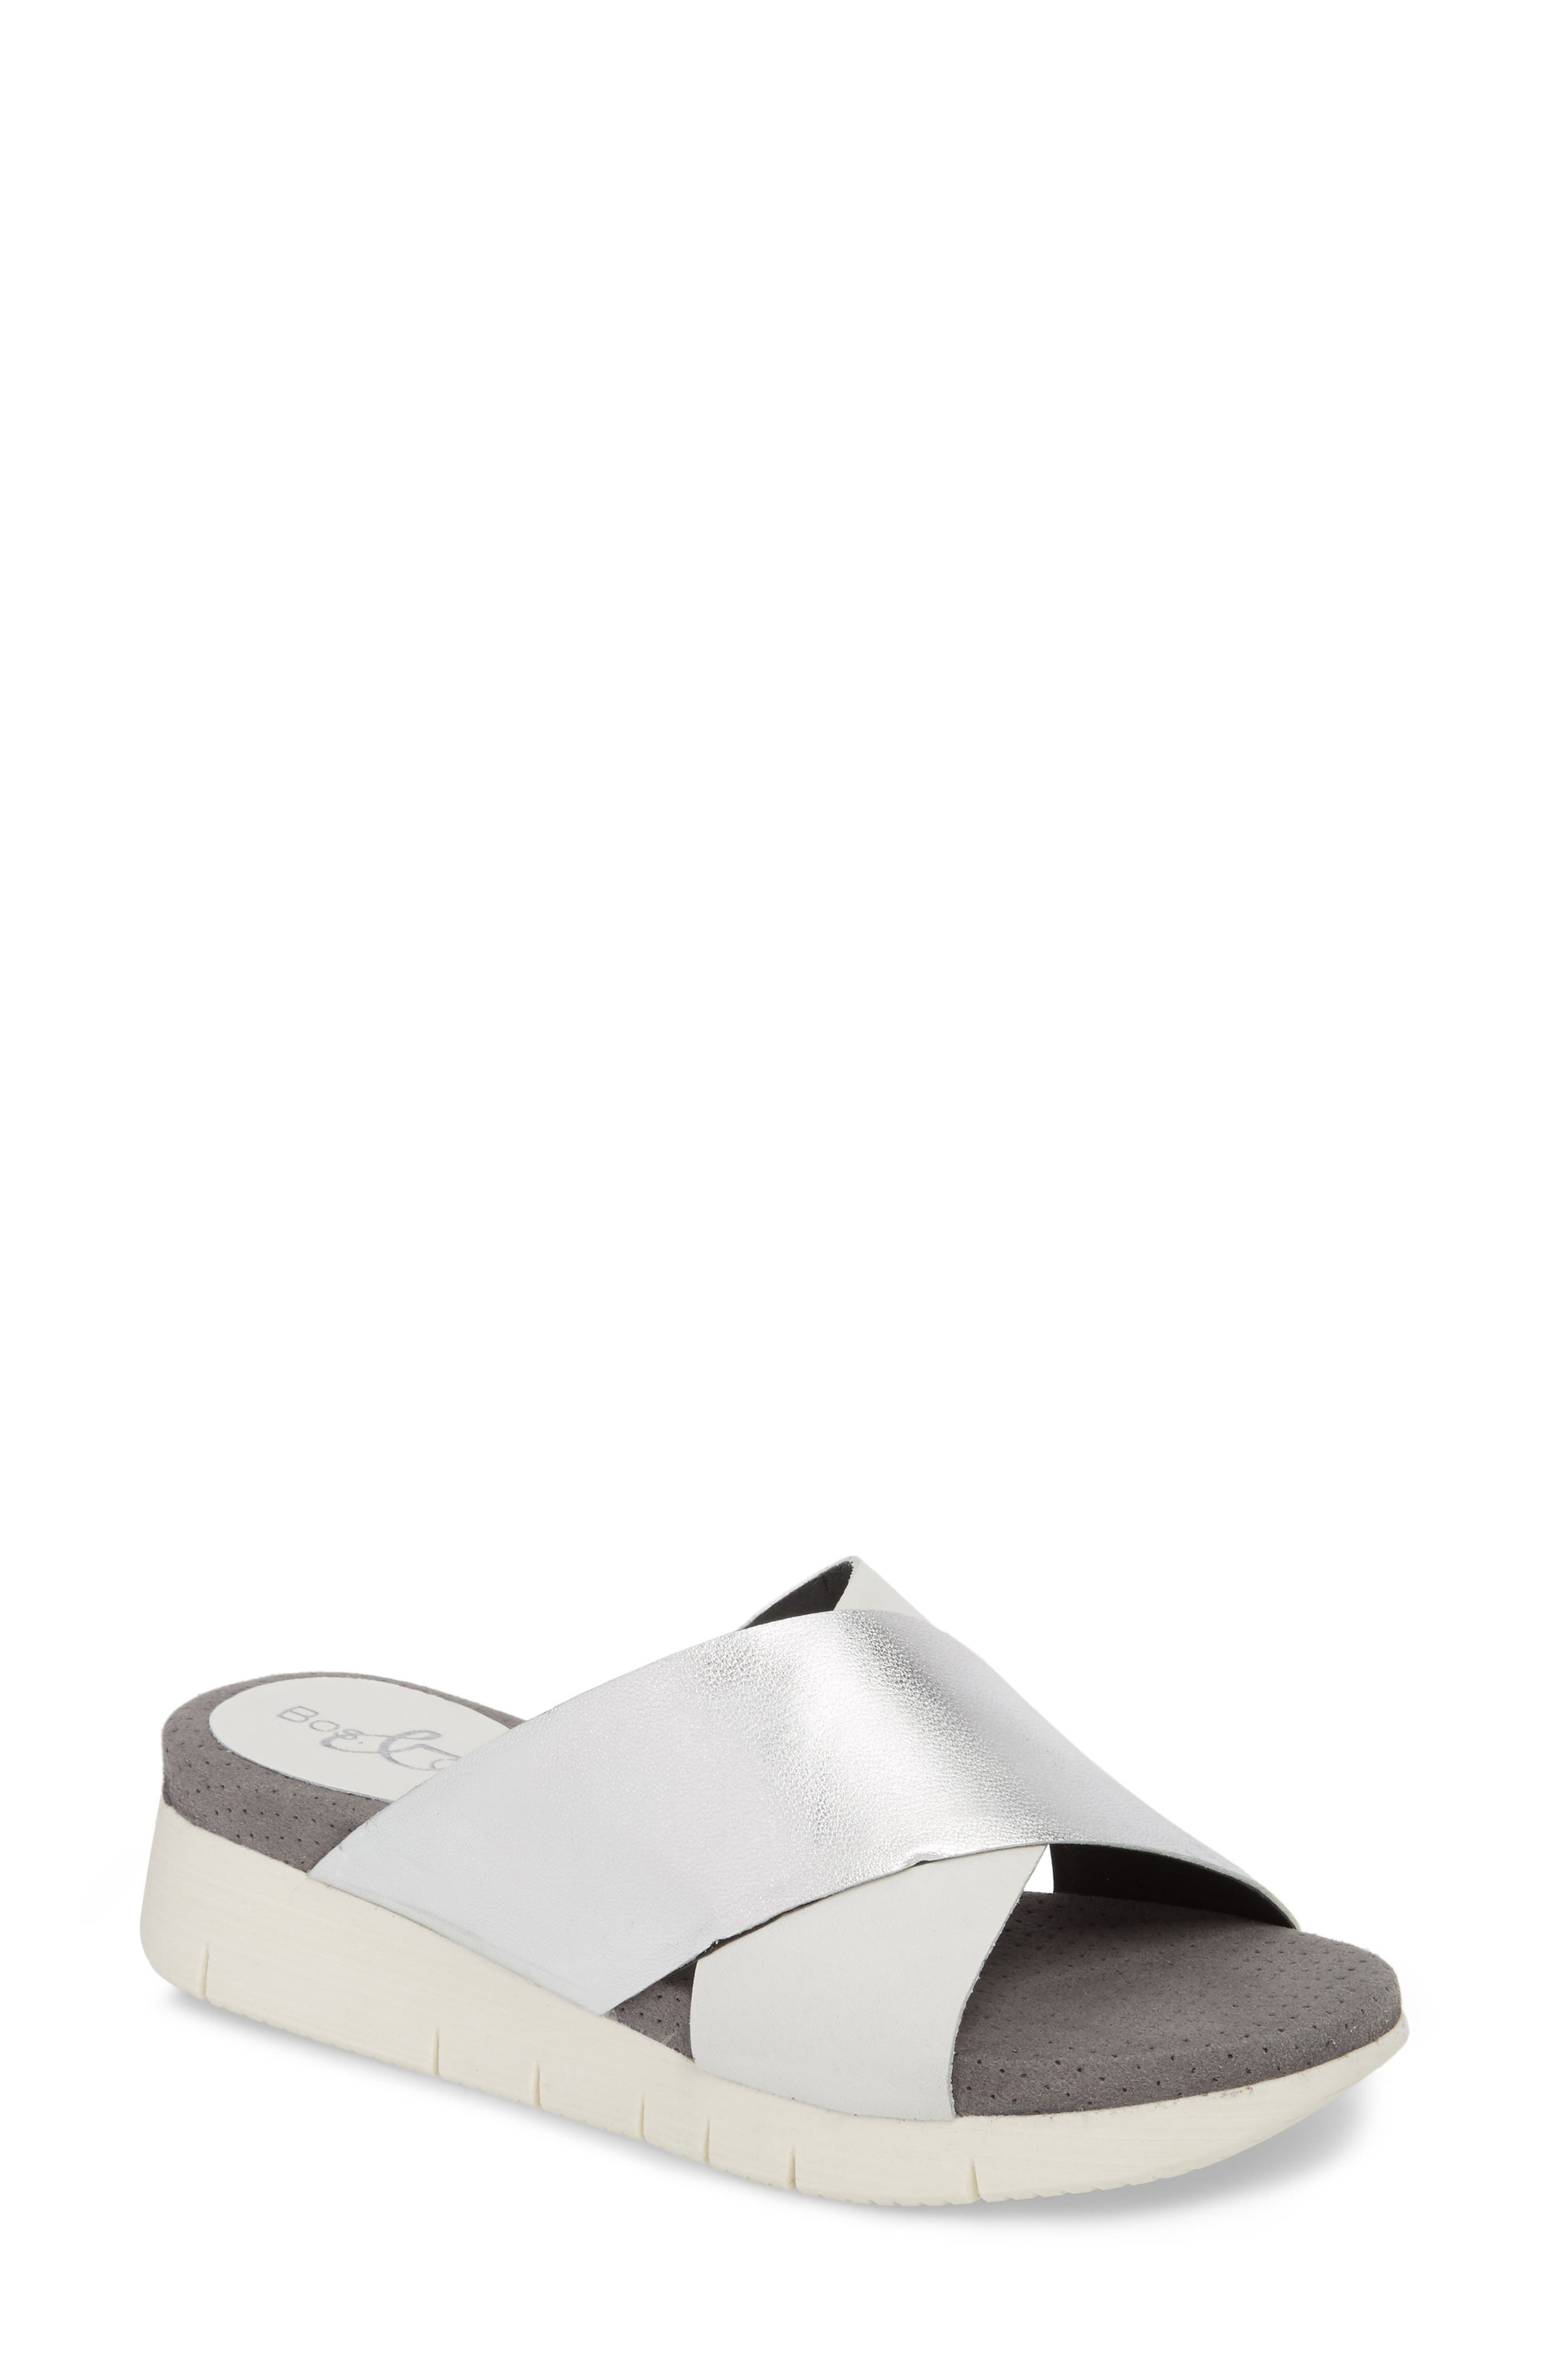 Bos. & Co. Piney Slide Sandal (Women)